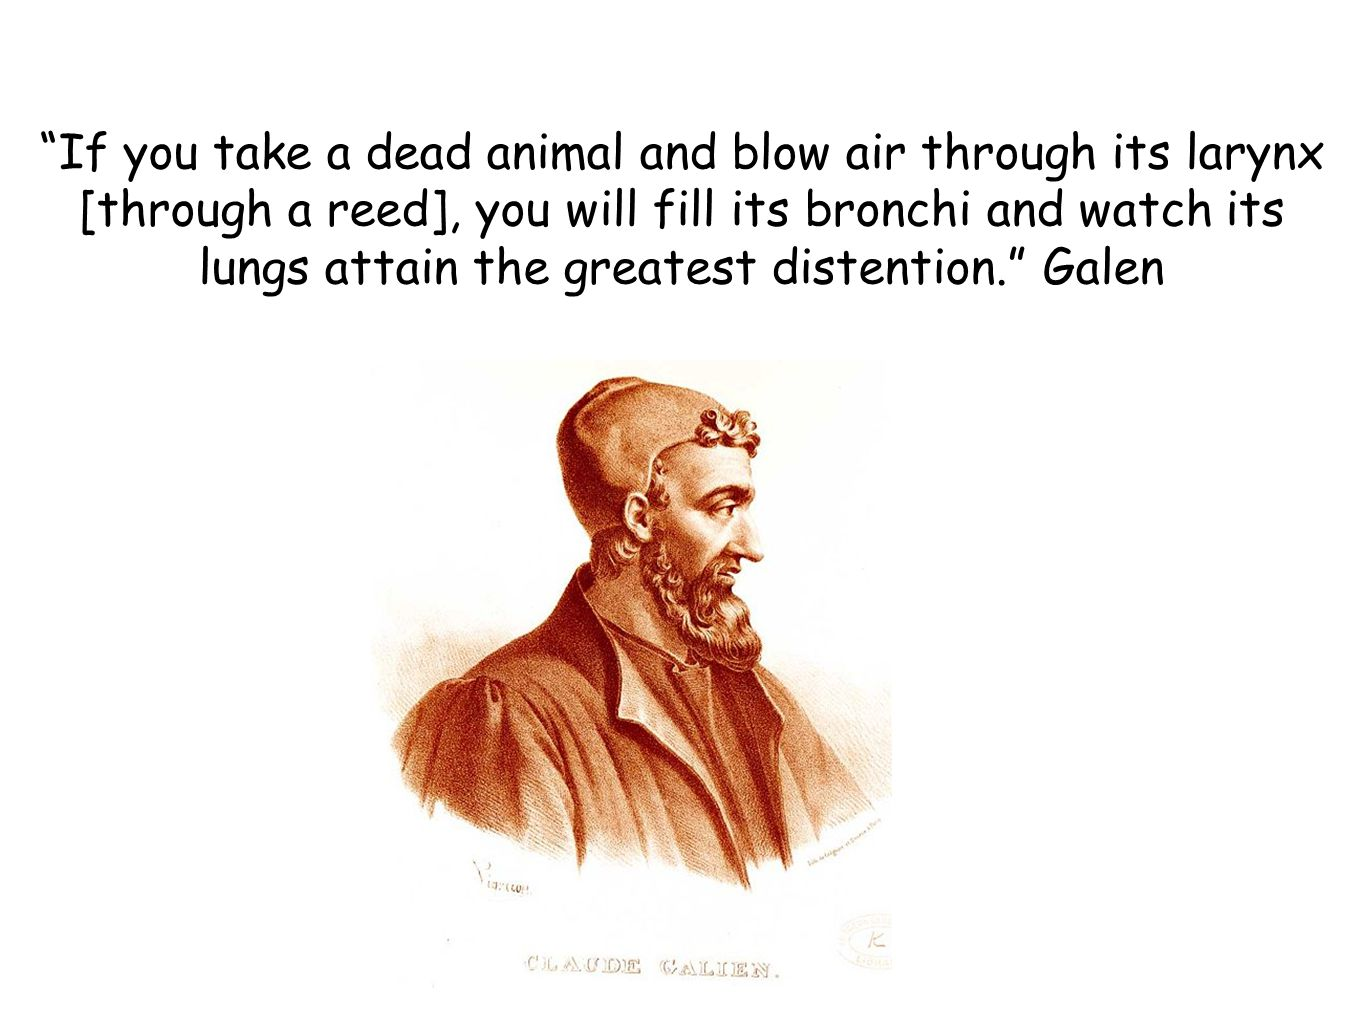 If you take a dead animal and blow air through its larynx [through a reed], you will fill its bronchi and watch its lungs attain the greatest distention. Galen